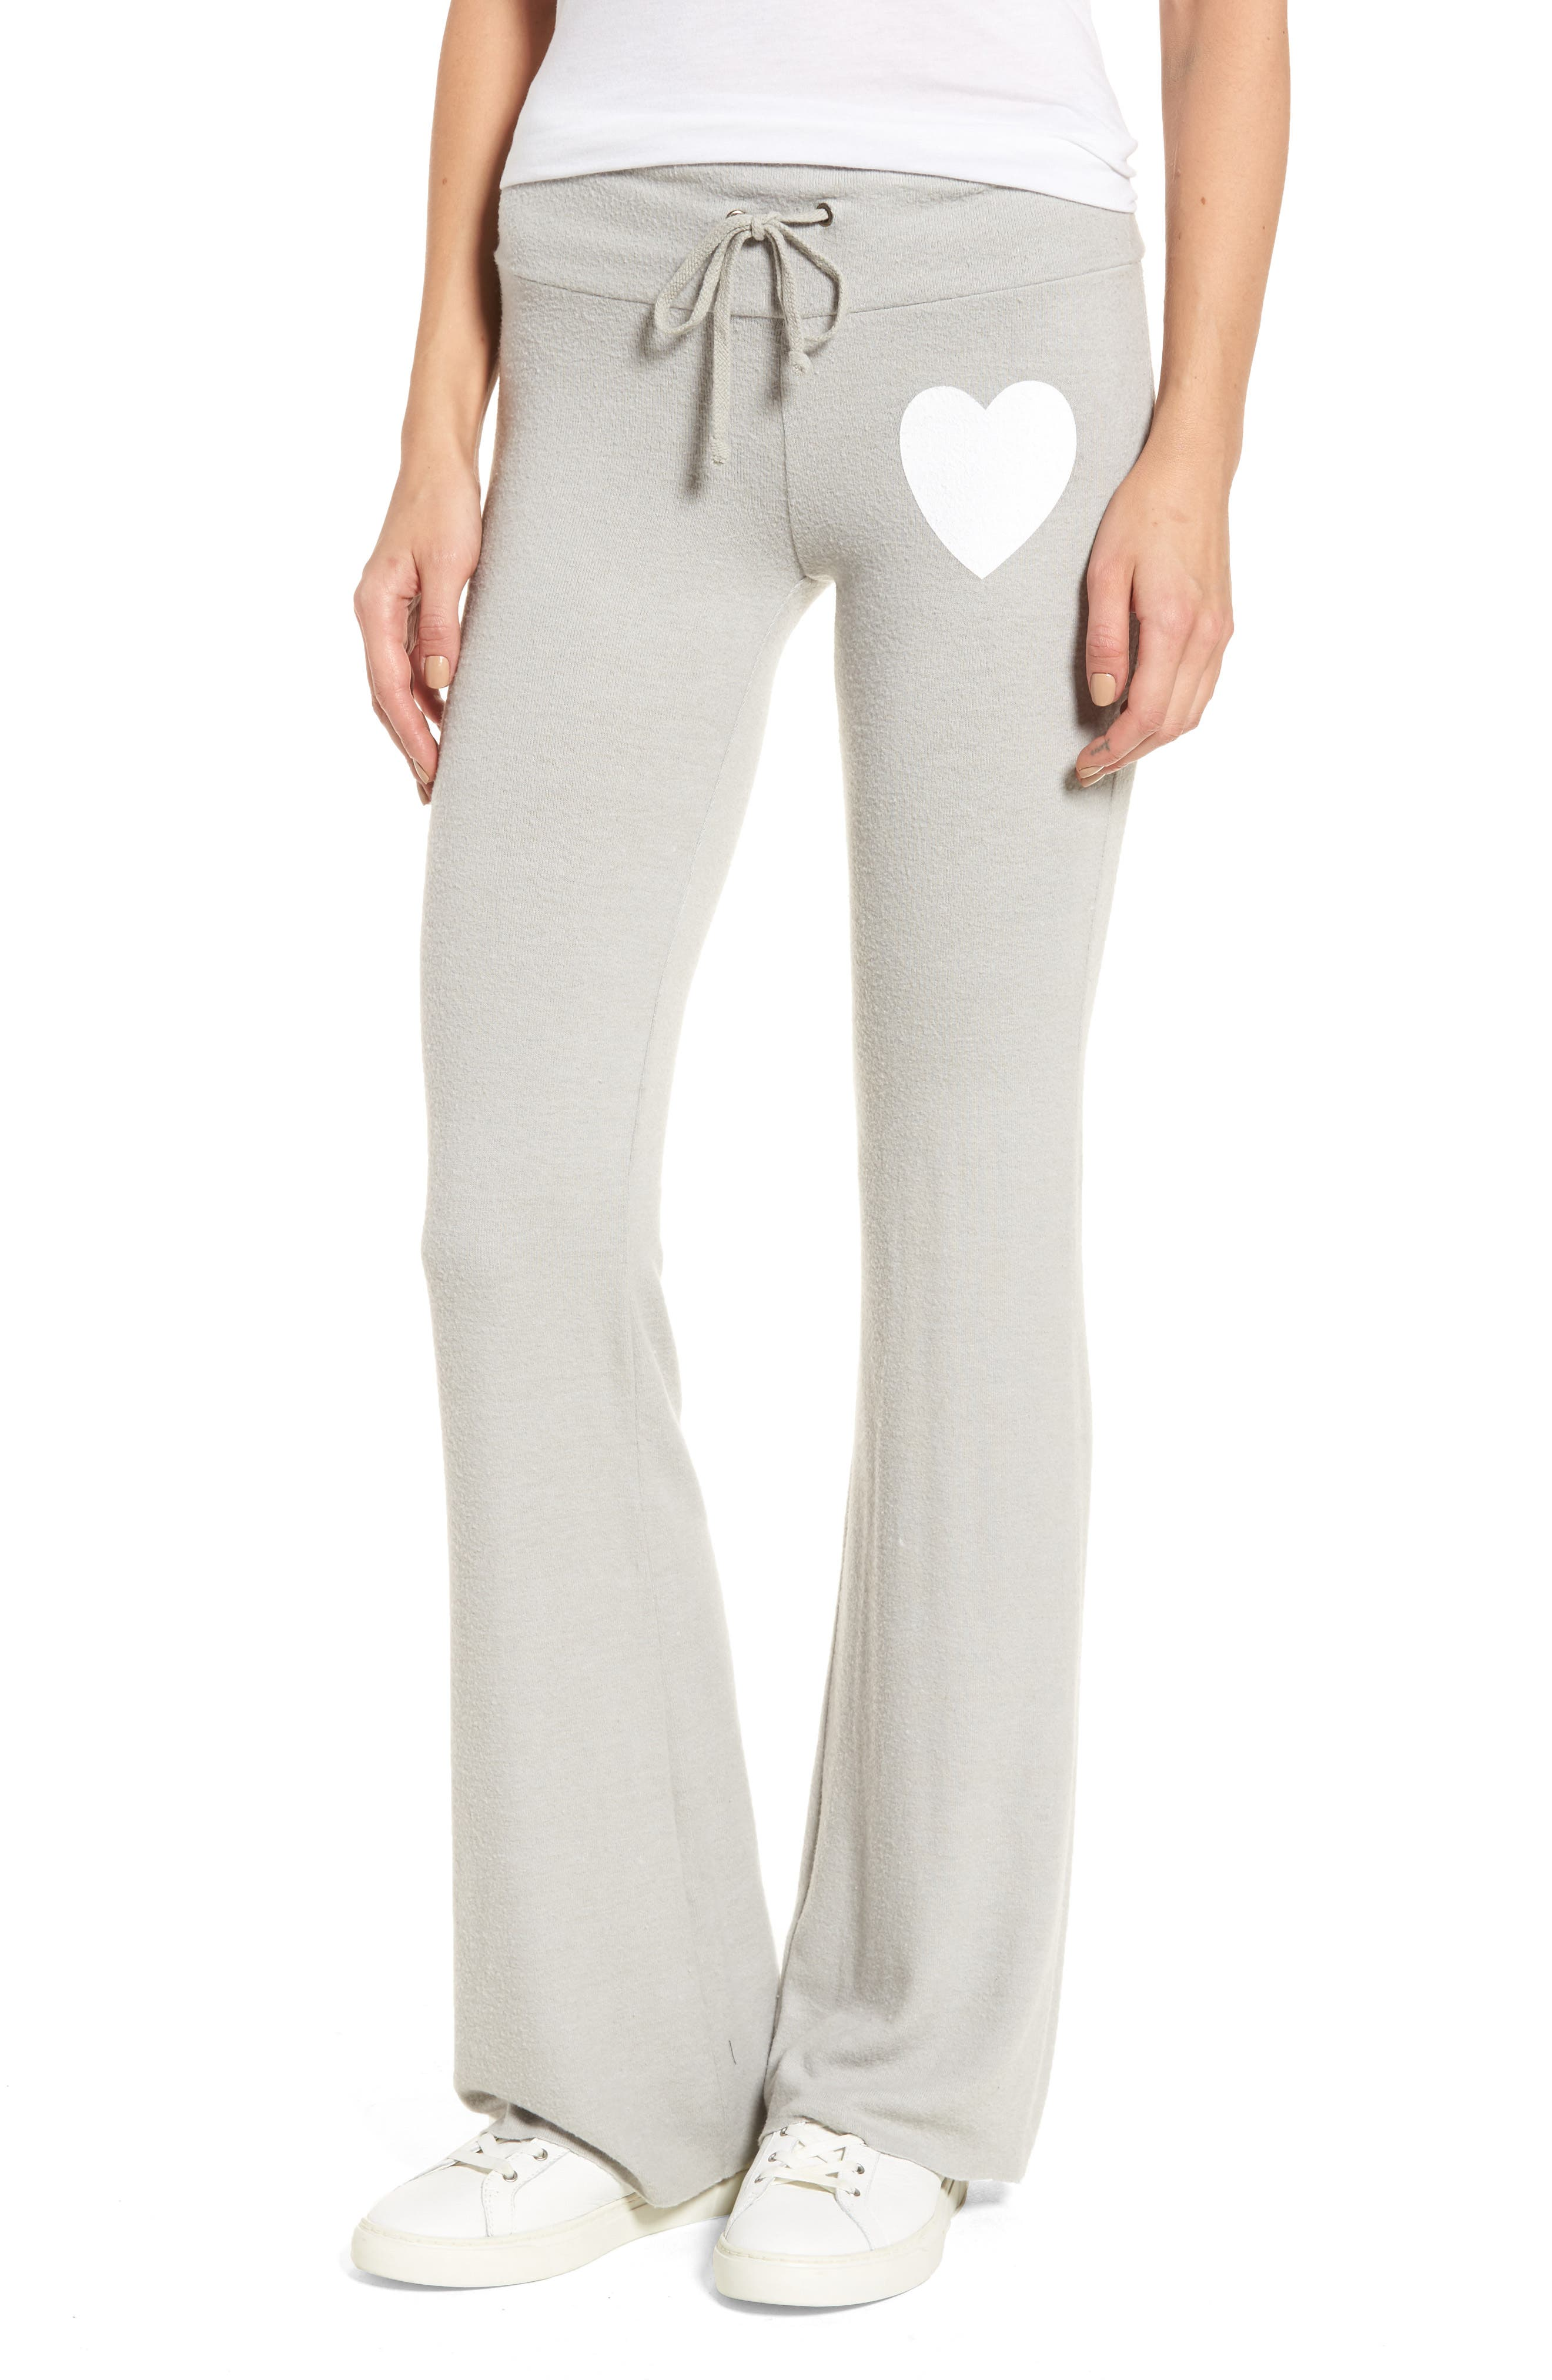 Eat Well Track Pants,                         Main,                         color, 060